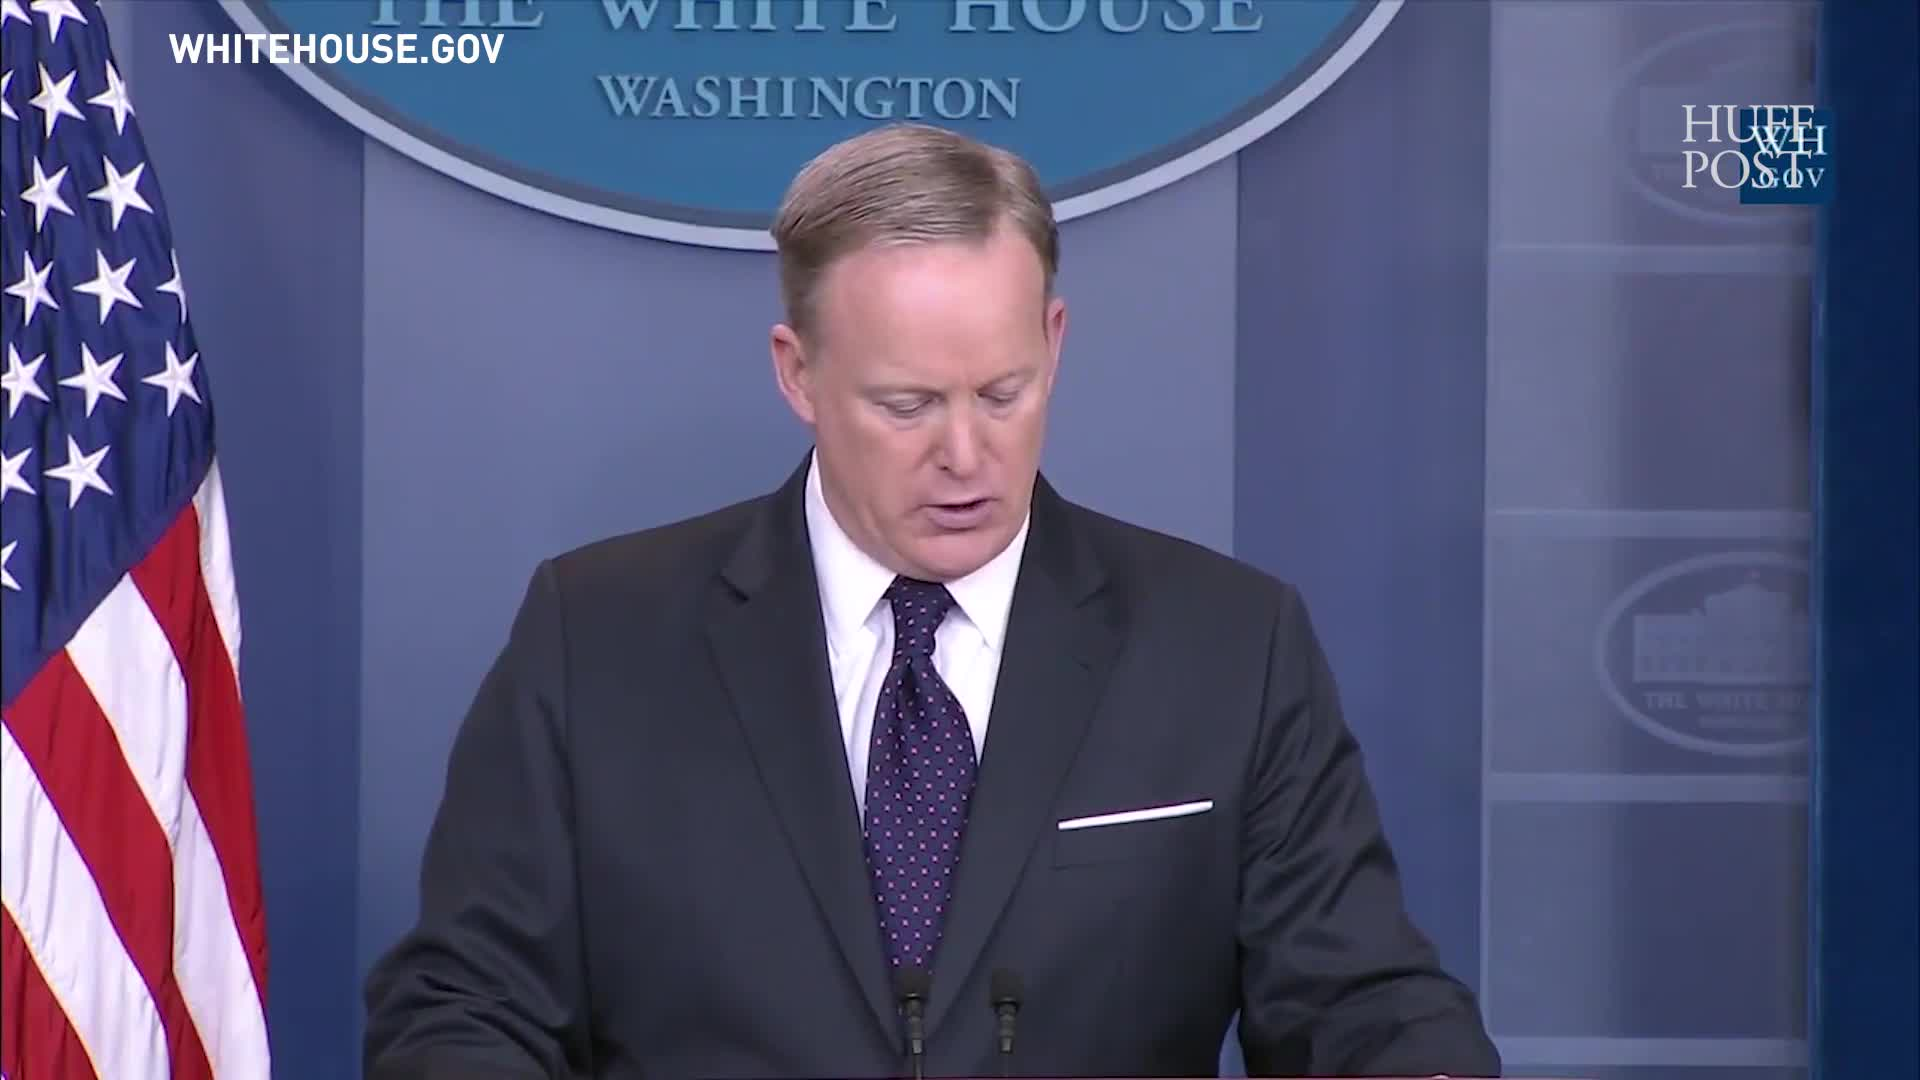 Sean Spicer, With Straight Face, Says Trump Is 'Committed To Empowering Women'